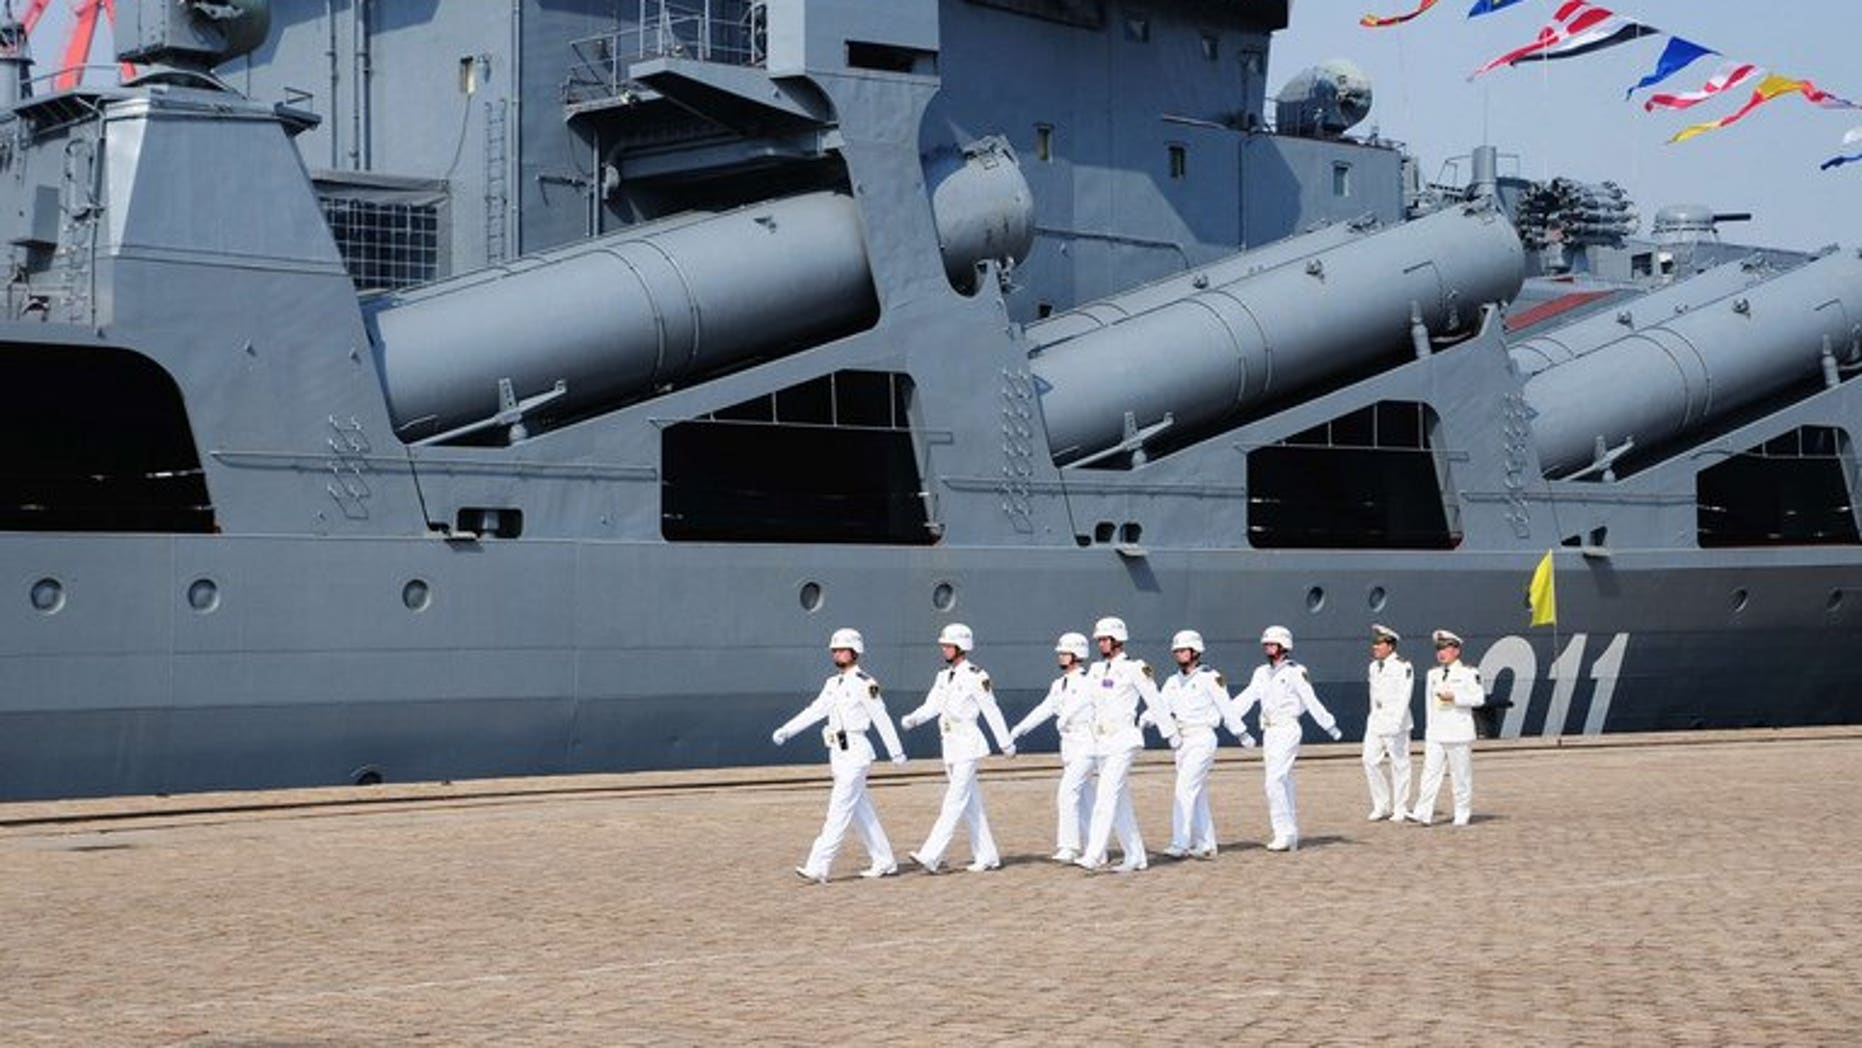 Chinese sailors march past the Russian destroyer Admiral Vinogradov, in Qingdao, northeastern China, on April 23, 2012. China and Russia will hold their second joint naval exercises from Friday, state media said, as Beijing and Tokyo row over disputed islands in the East China Sea.